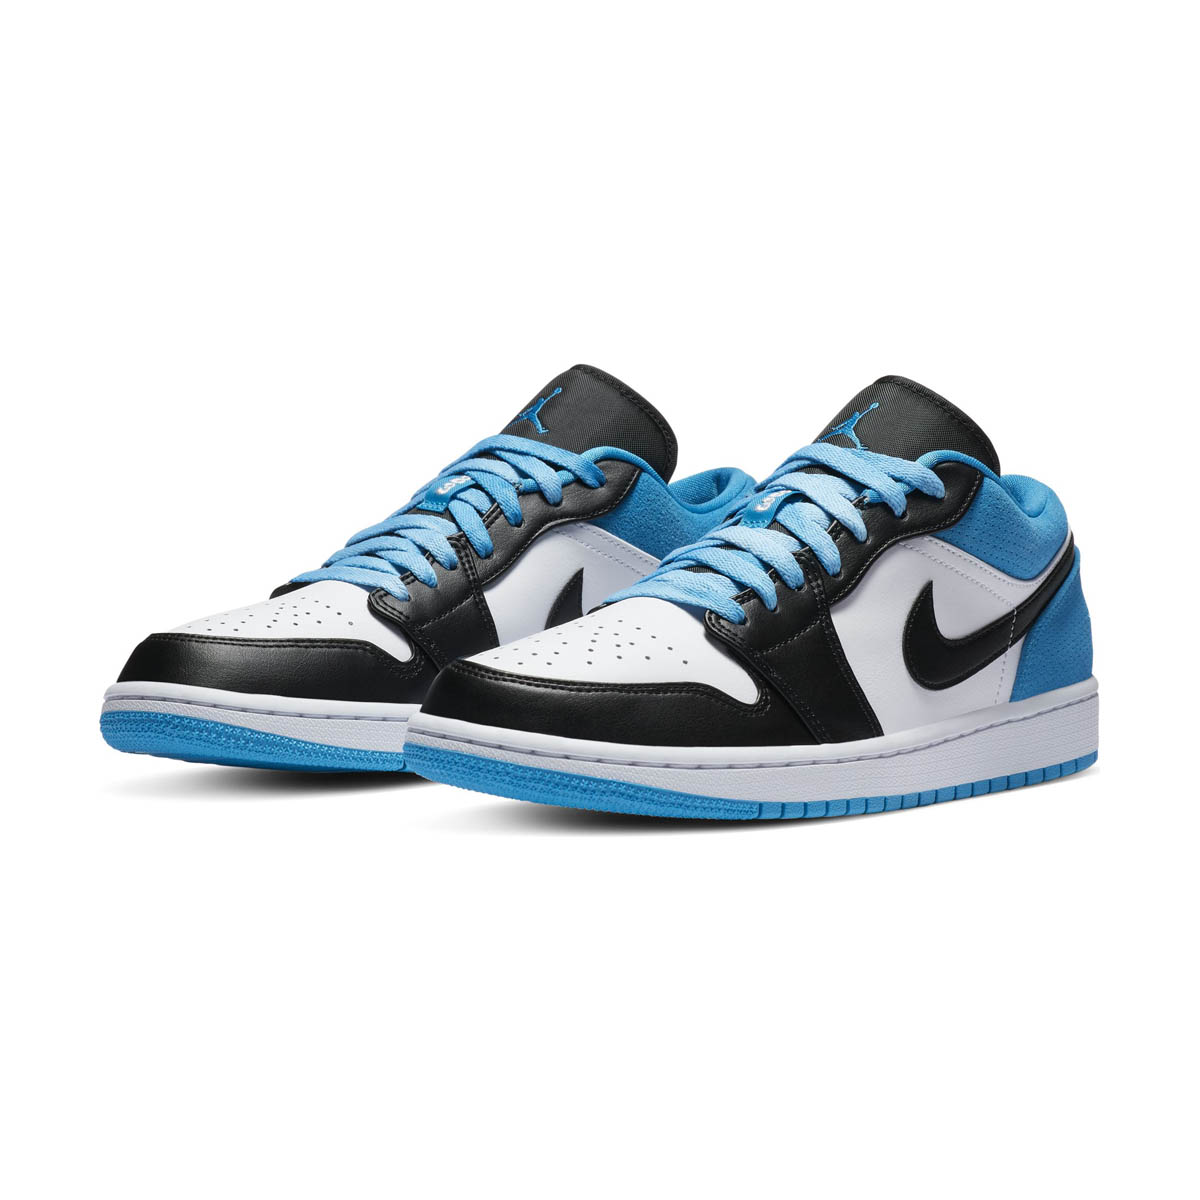 Men's Air Jordan 1 Low SE